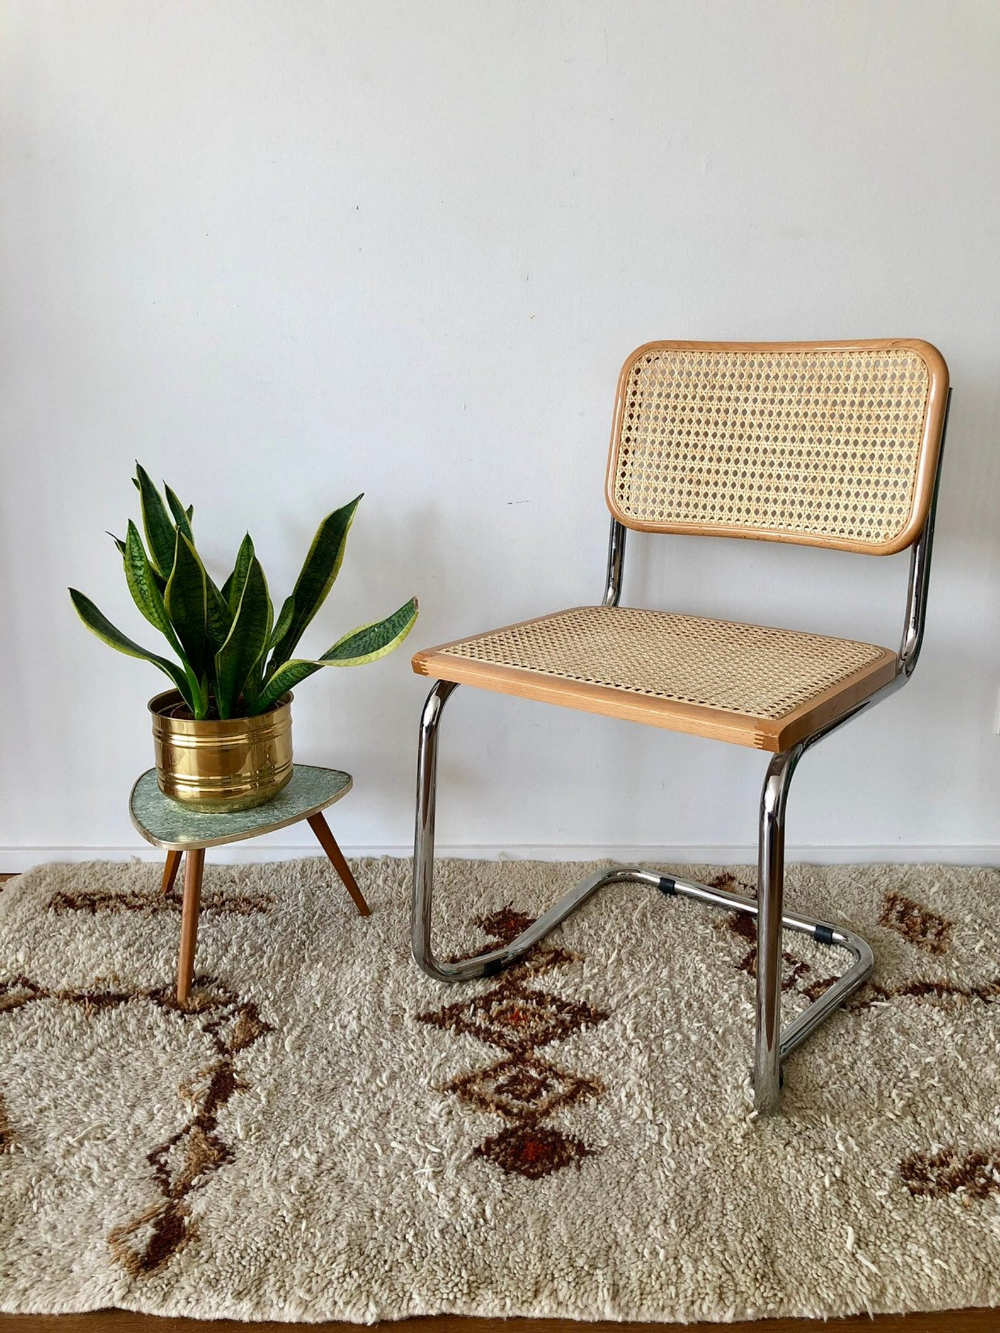 70s Freehinger Chair With Viennese Braid In Thonet Style